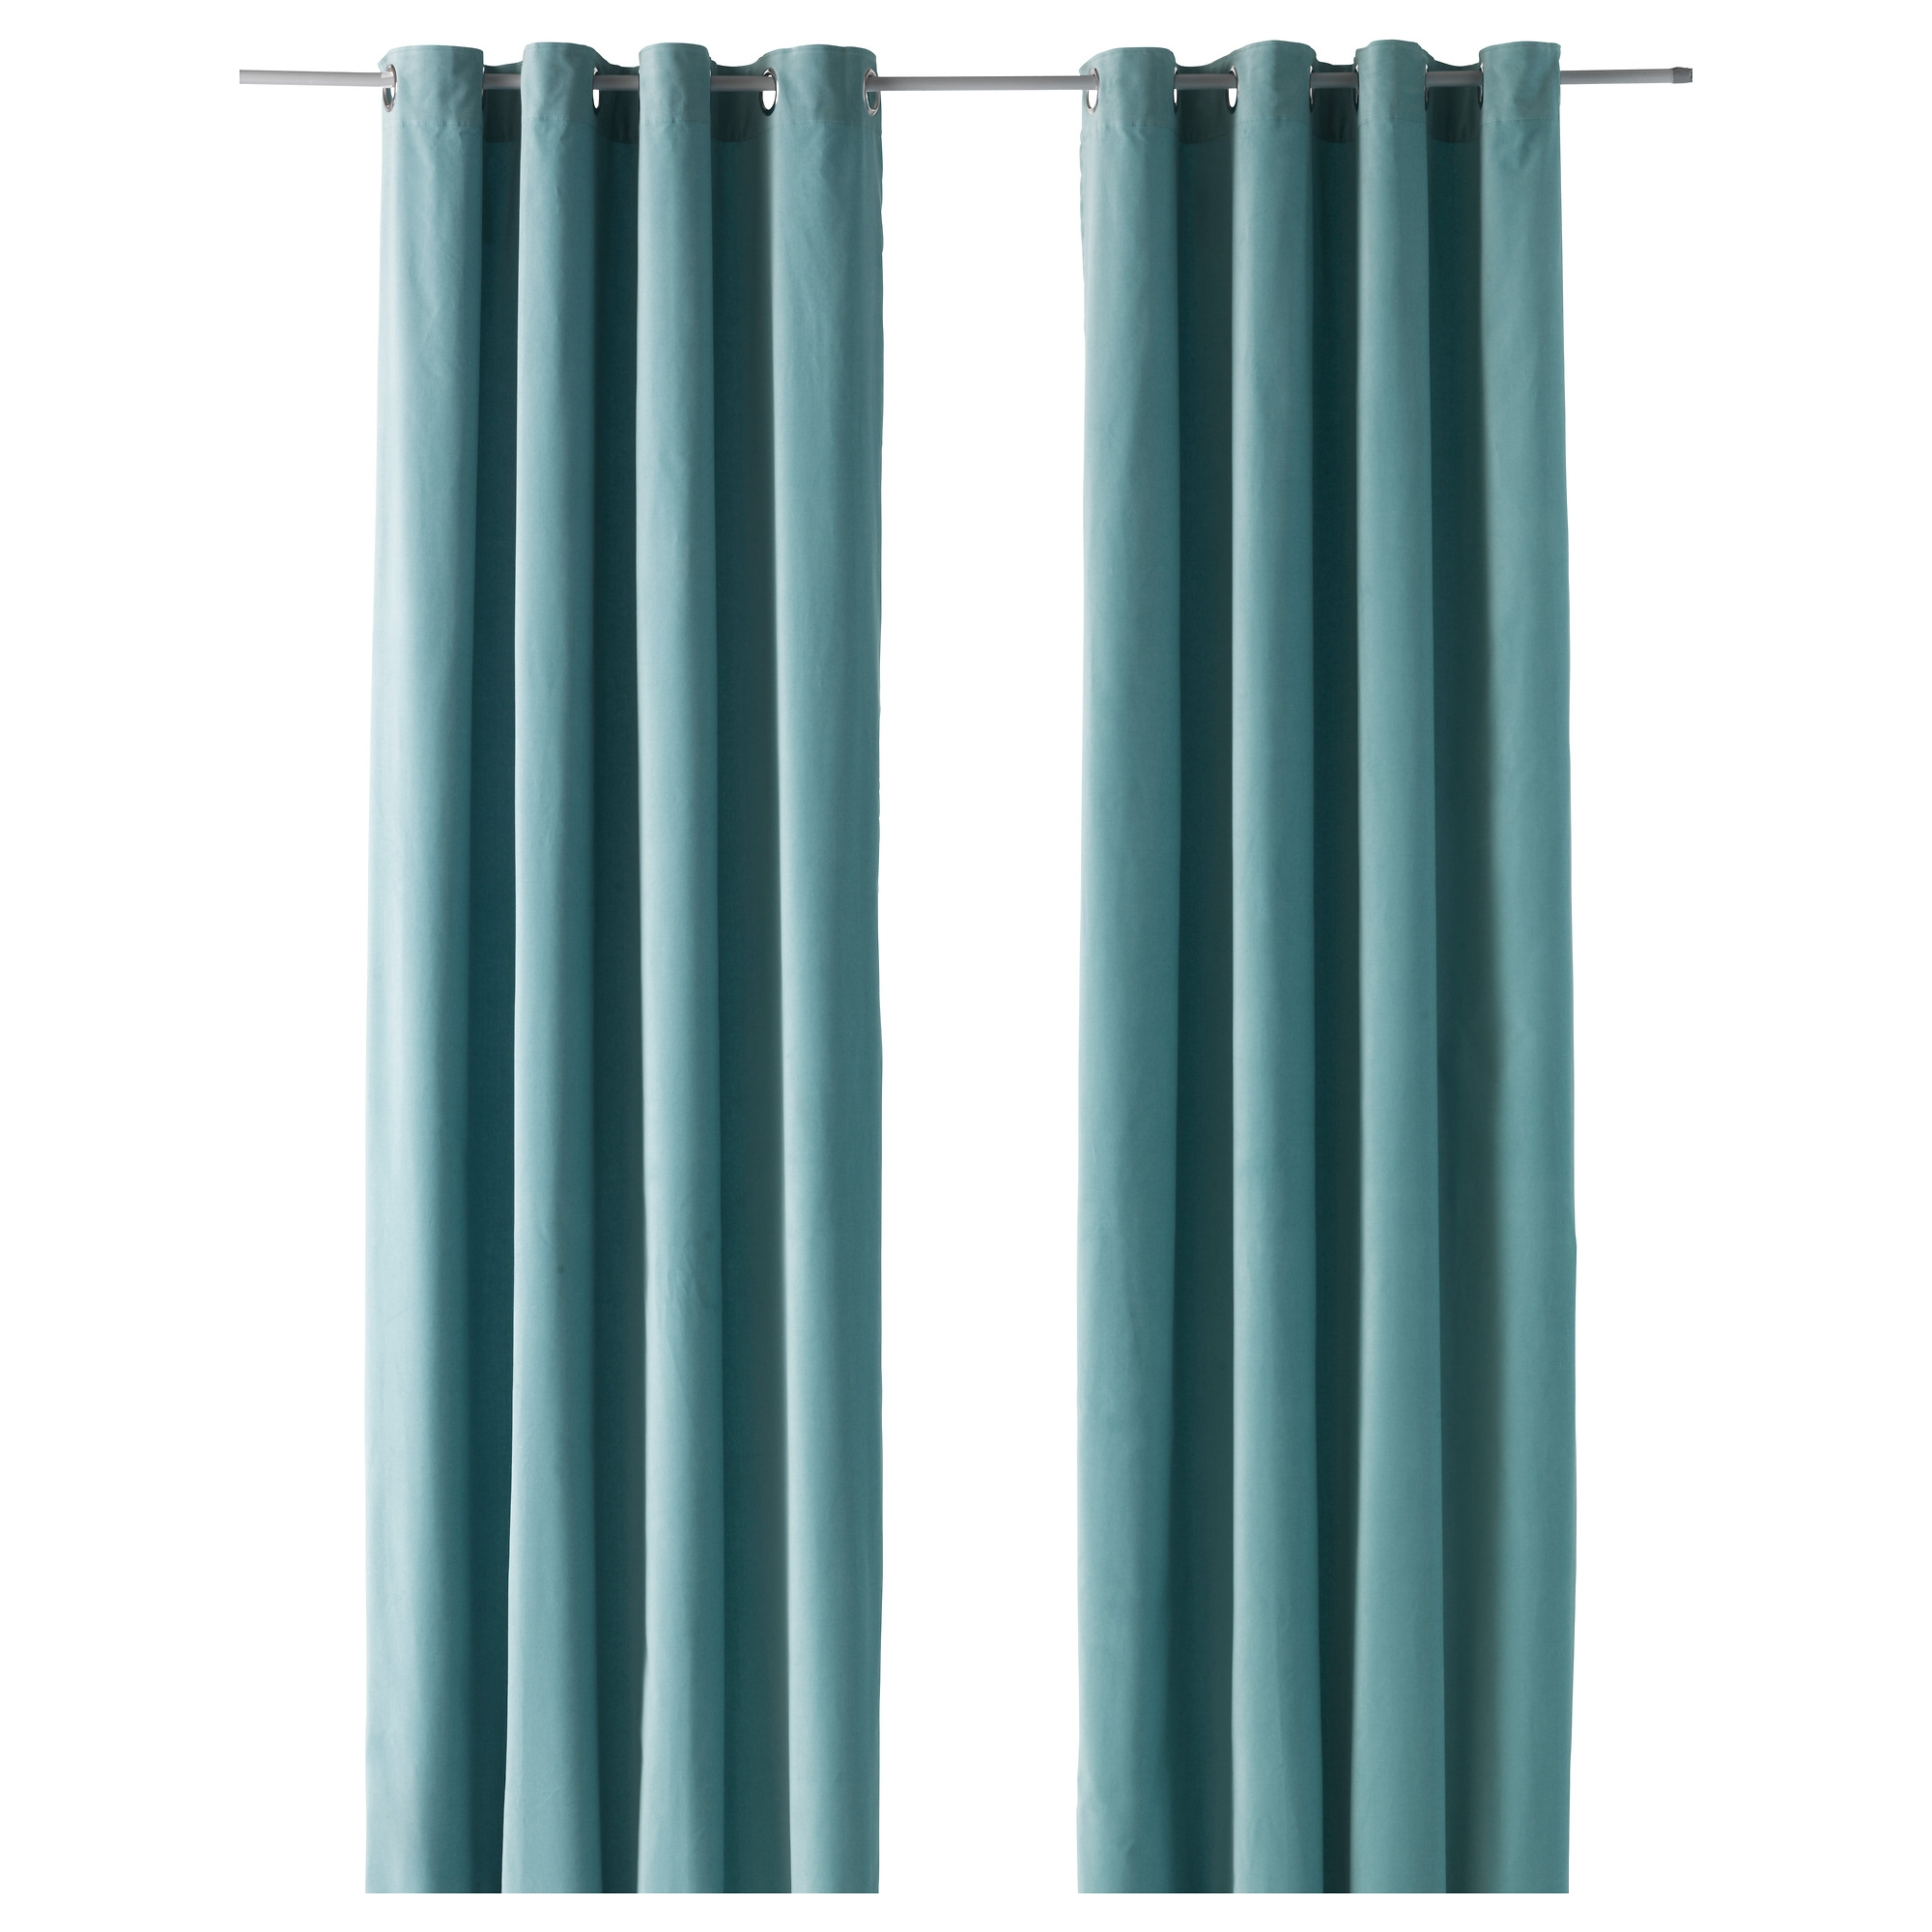 Sanela Curtains 1 Pair 55×98 Ikea Intended For Velveteen Curtains (Image 12 of 15)